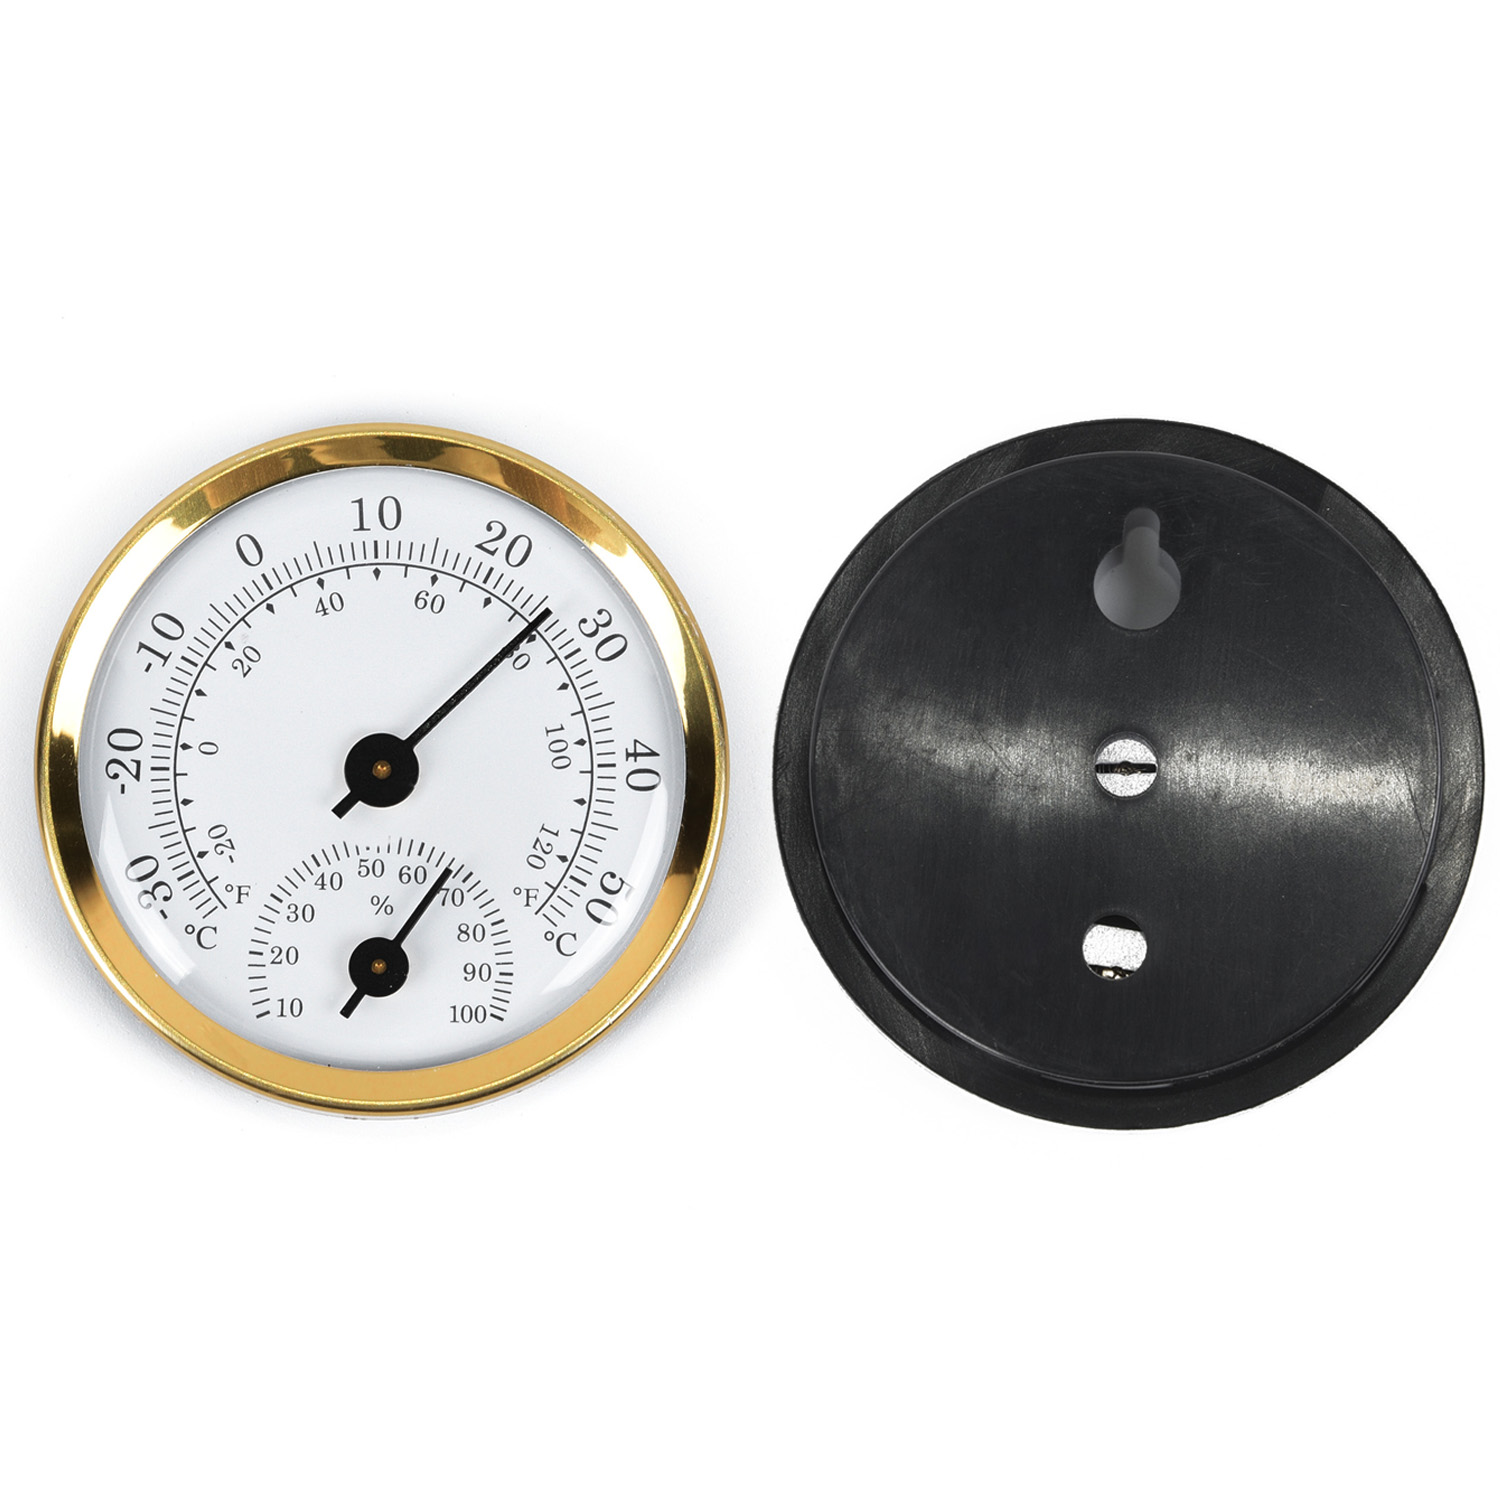 Analog Thermometer Hygrometer Temperature Humidity Indoor Outdoor Classic Design Home Garden Supplies